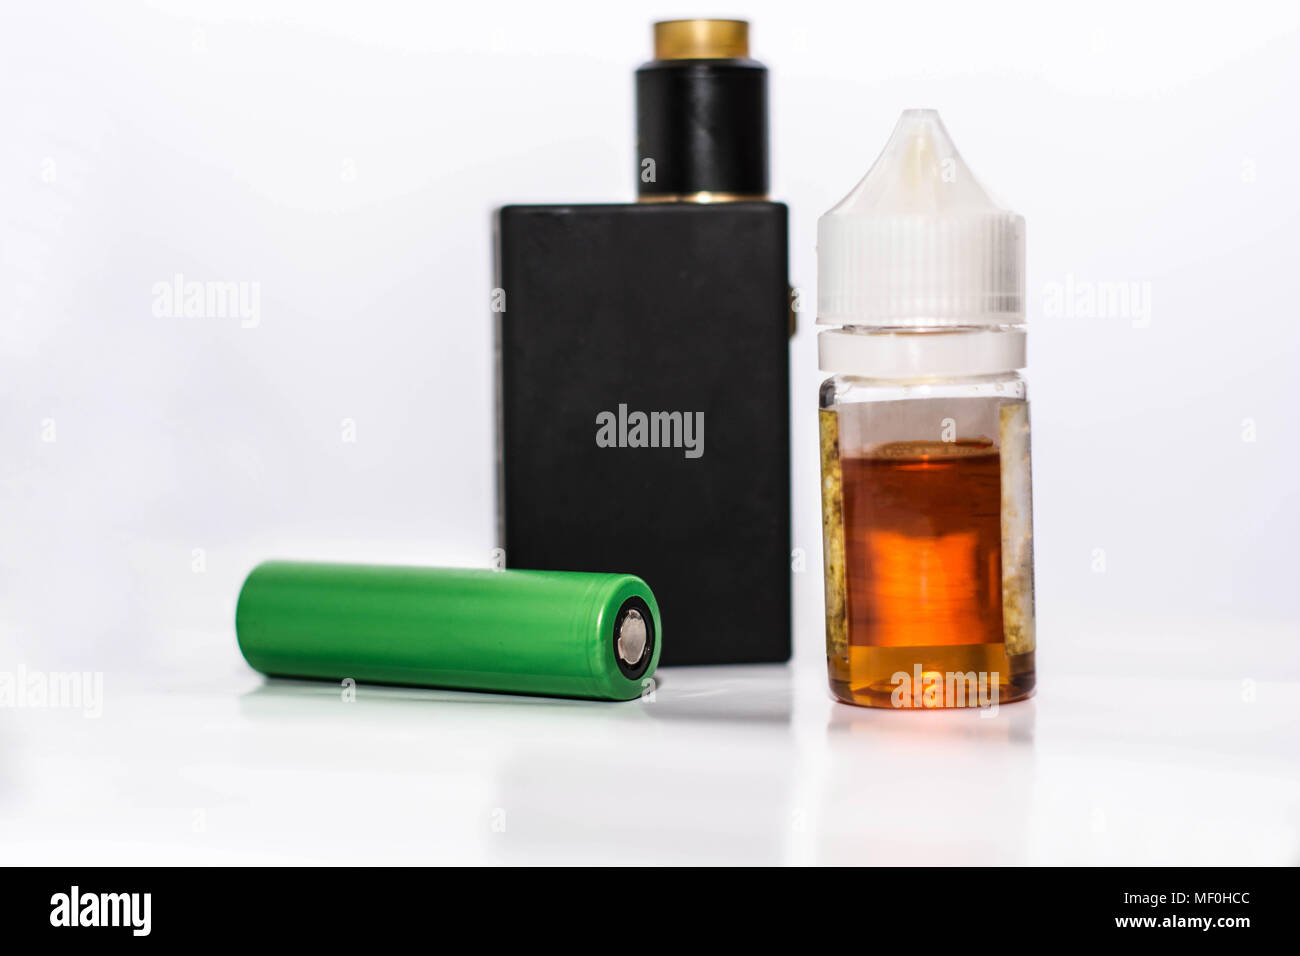 Personal Vaporizer with E liquid and battery - Stock Image